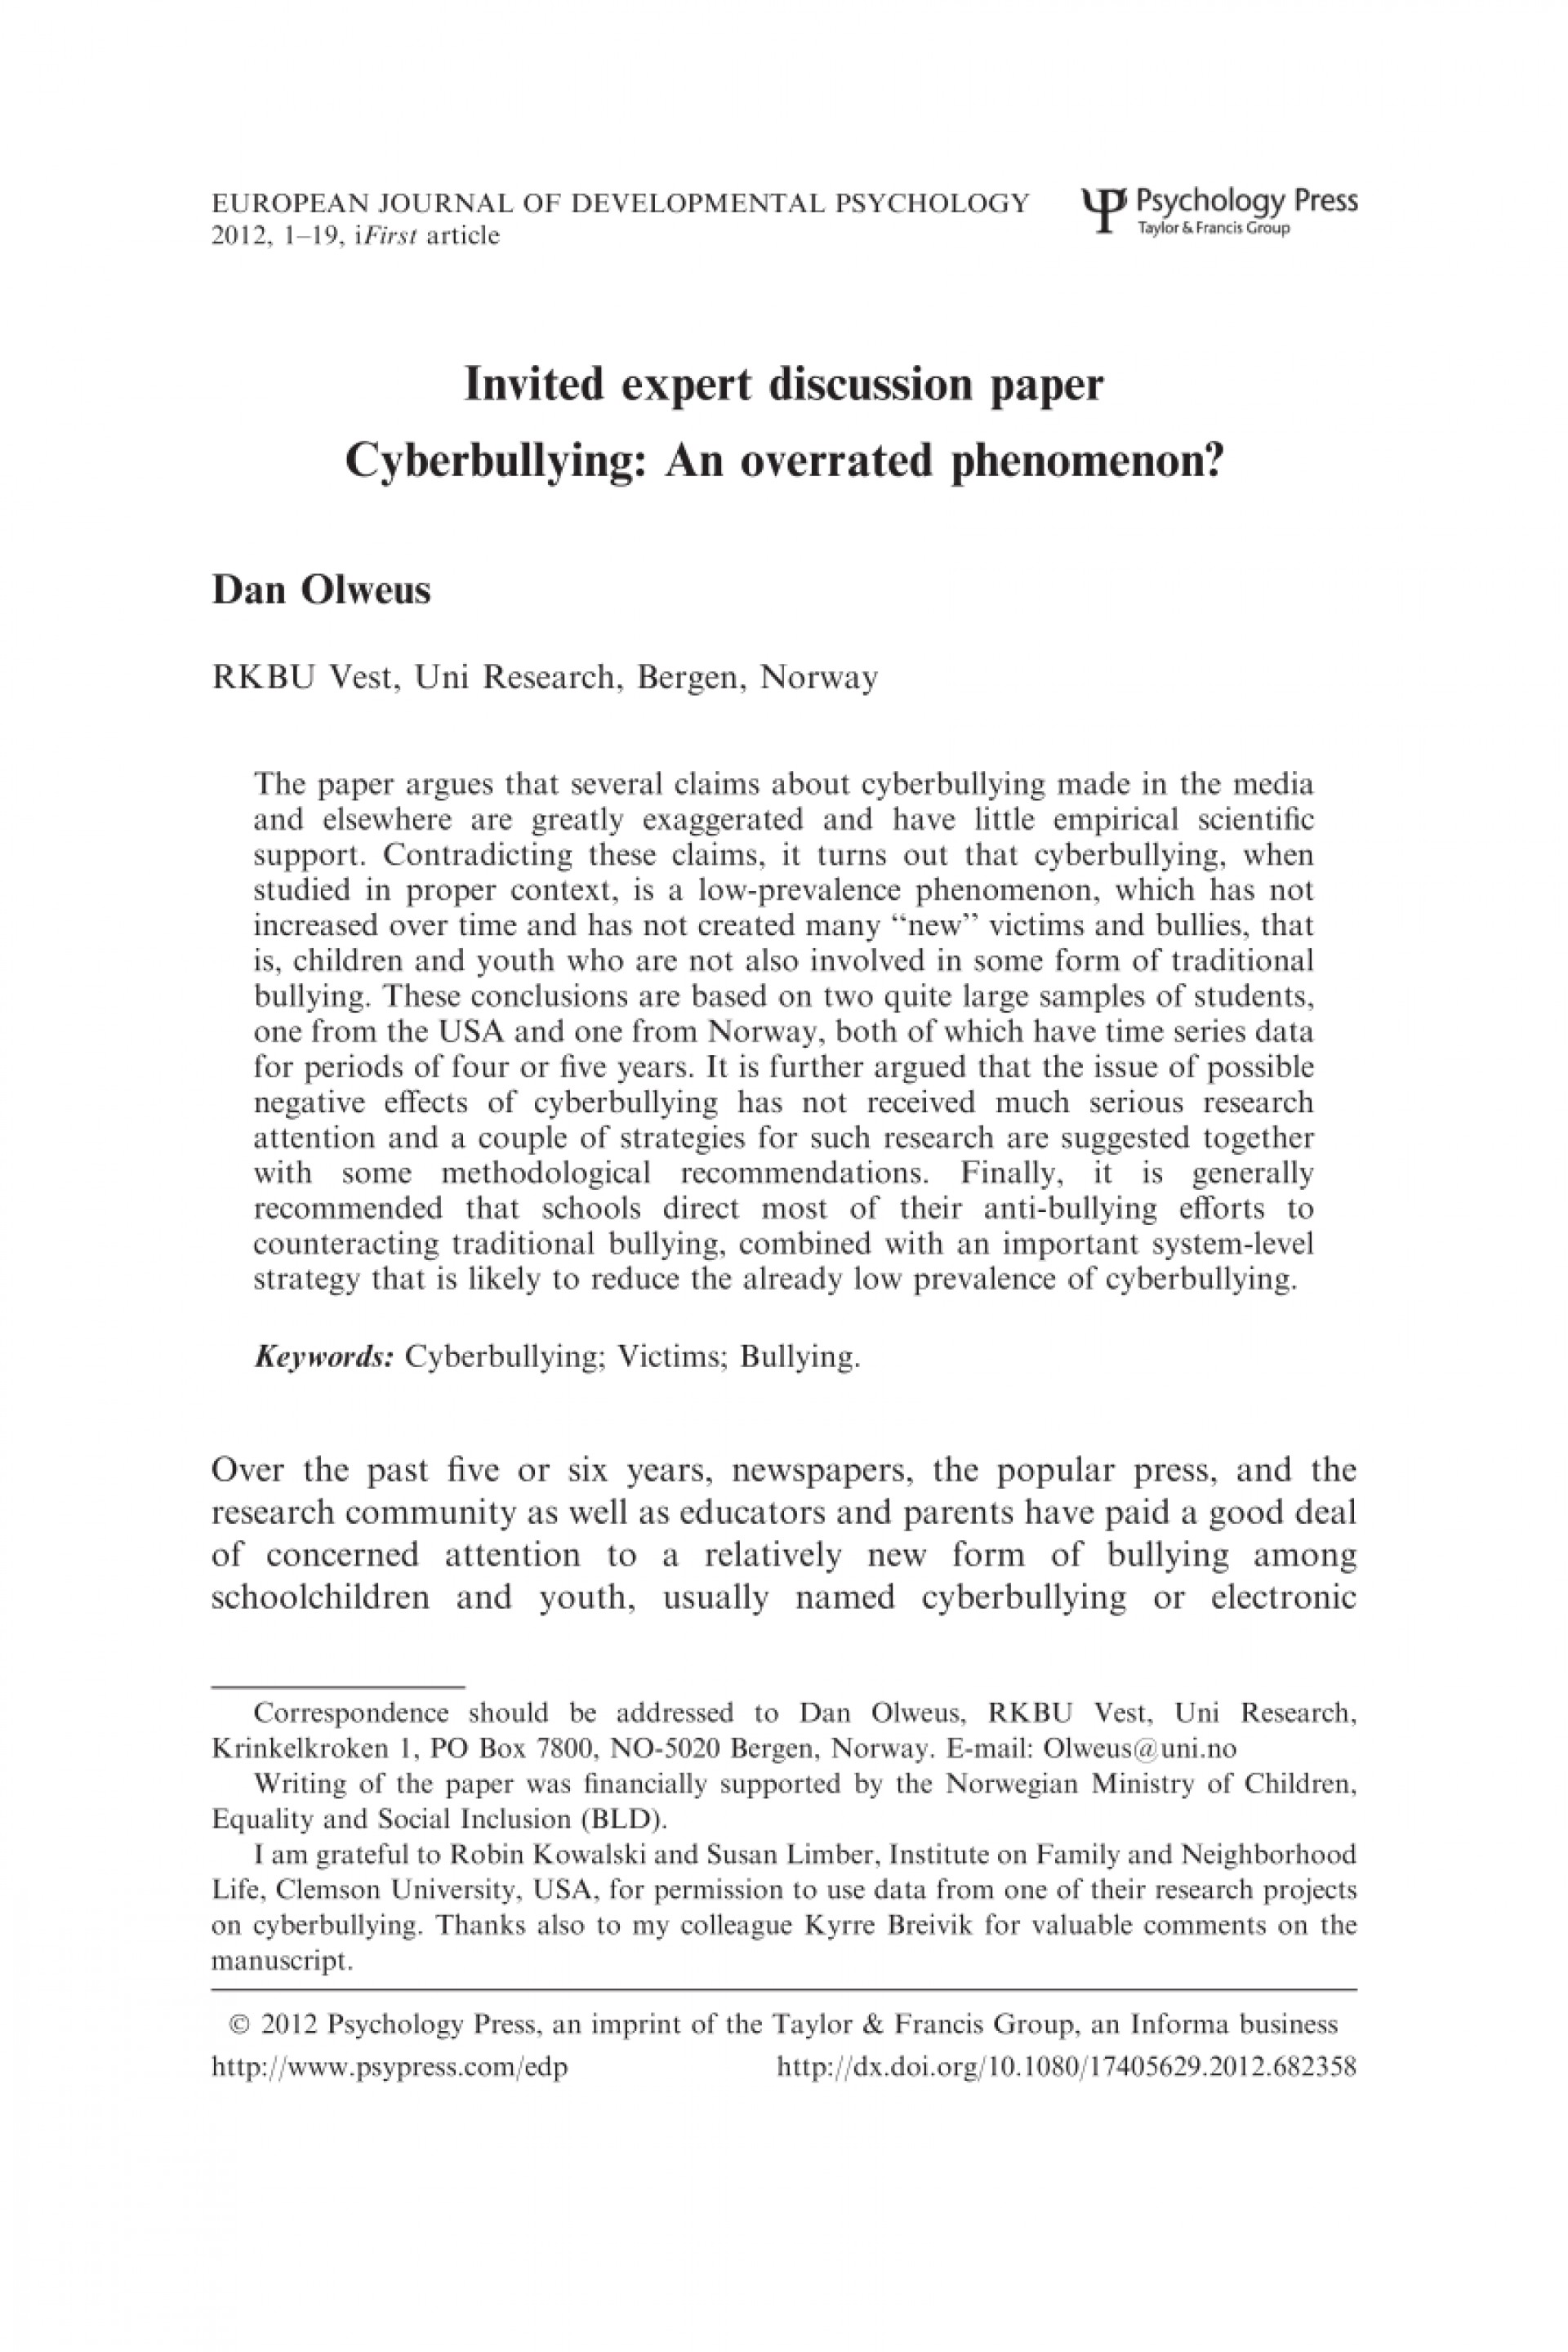 008 Cyberbullying Research Paper Example Breathtaking Sample 1920